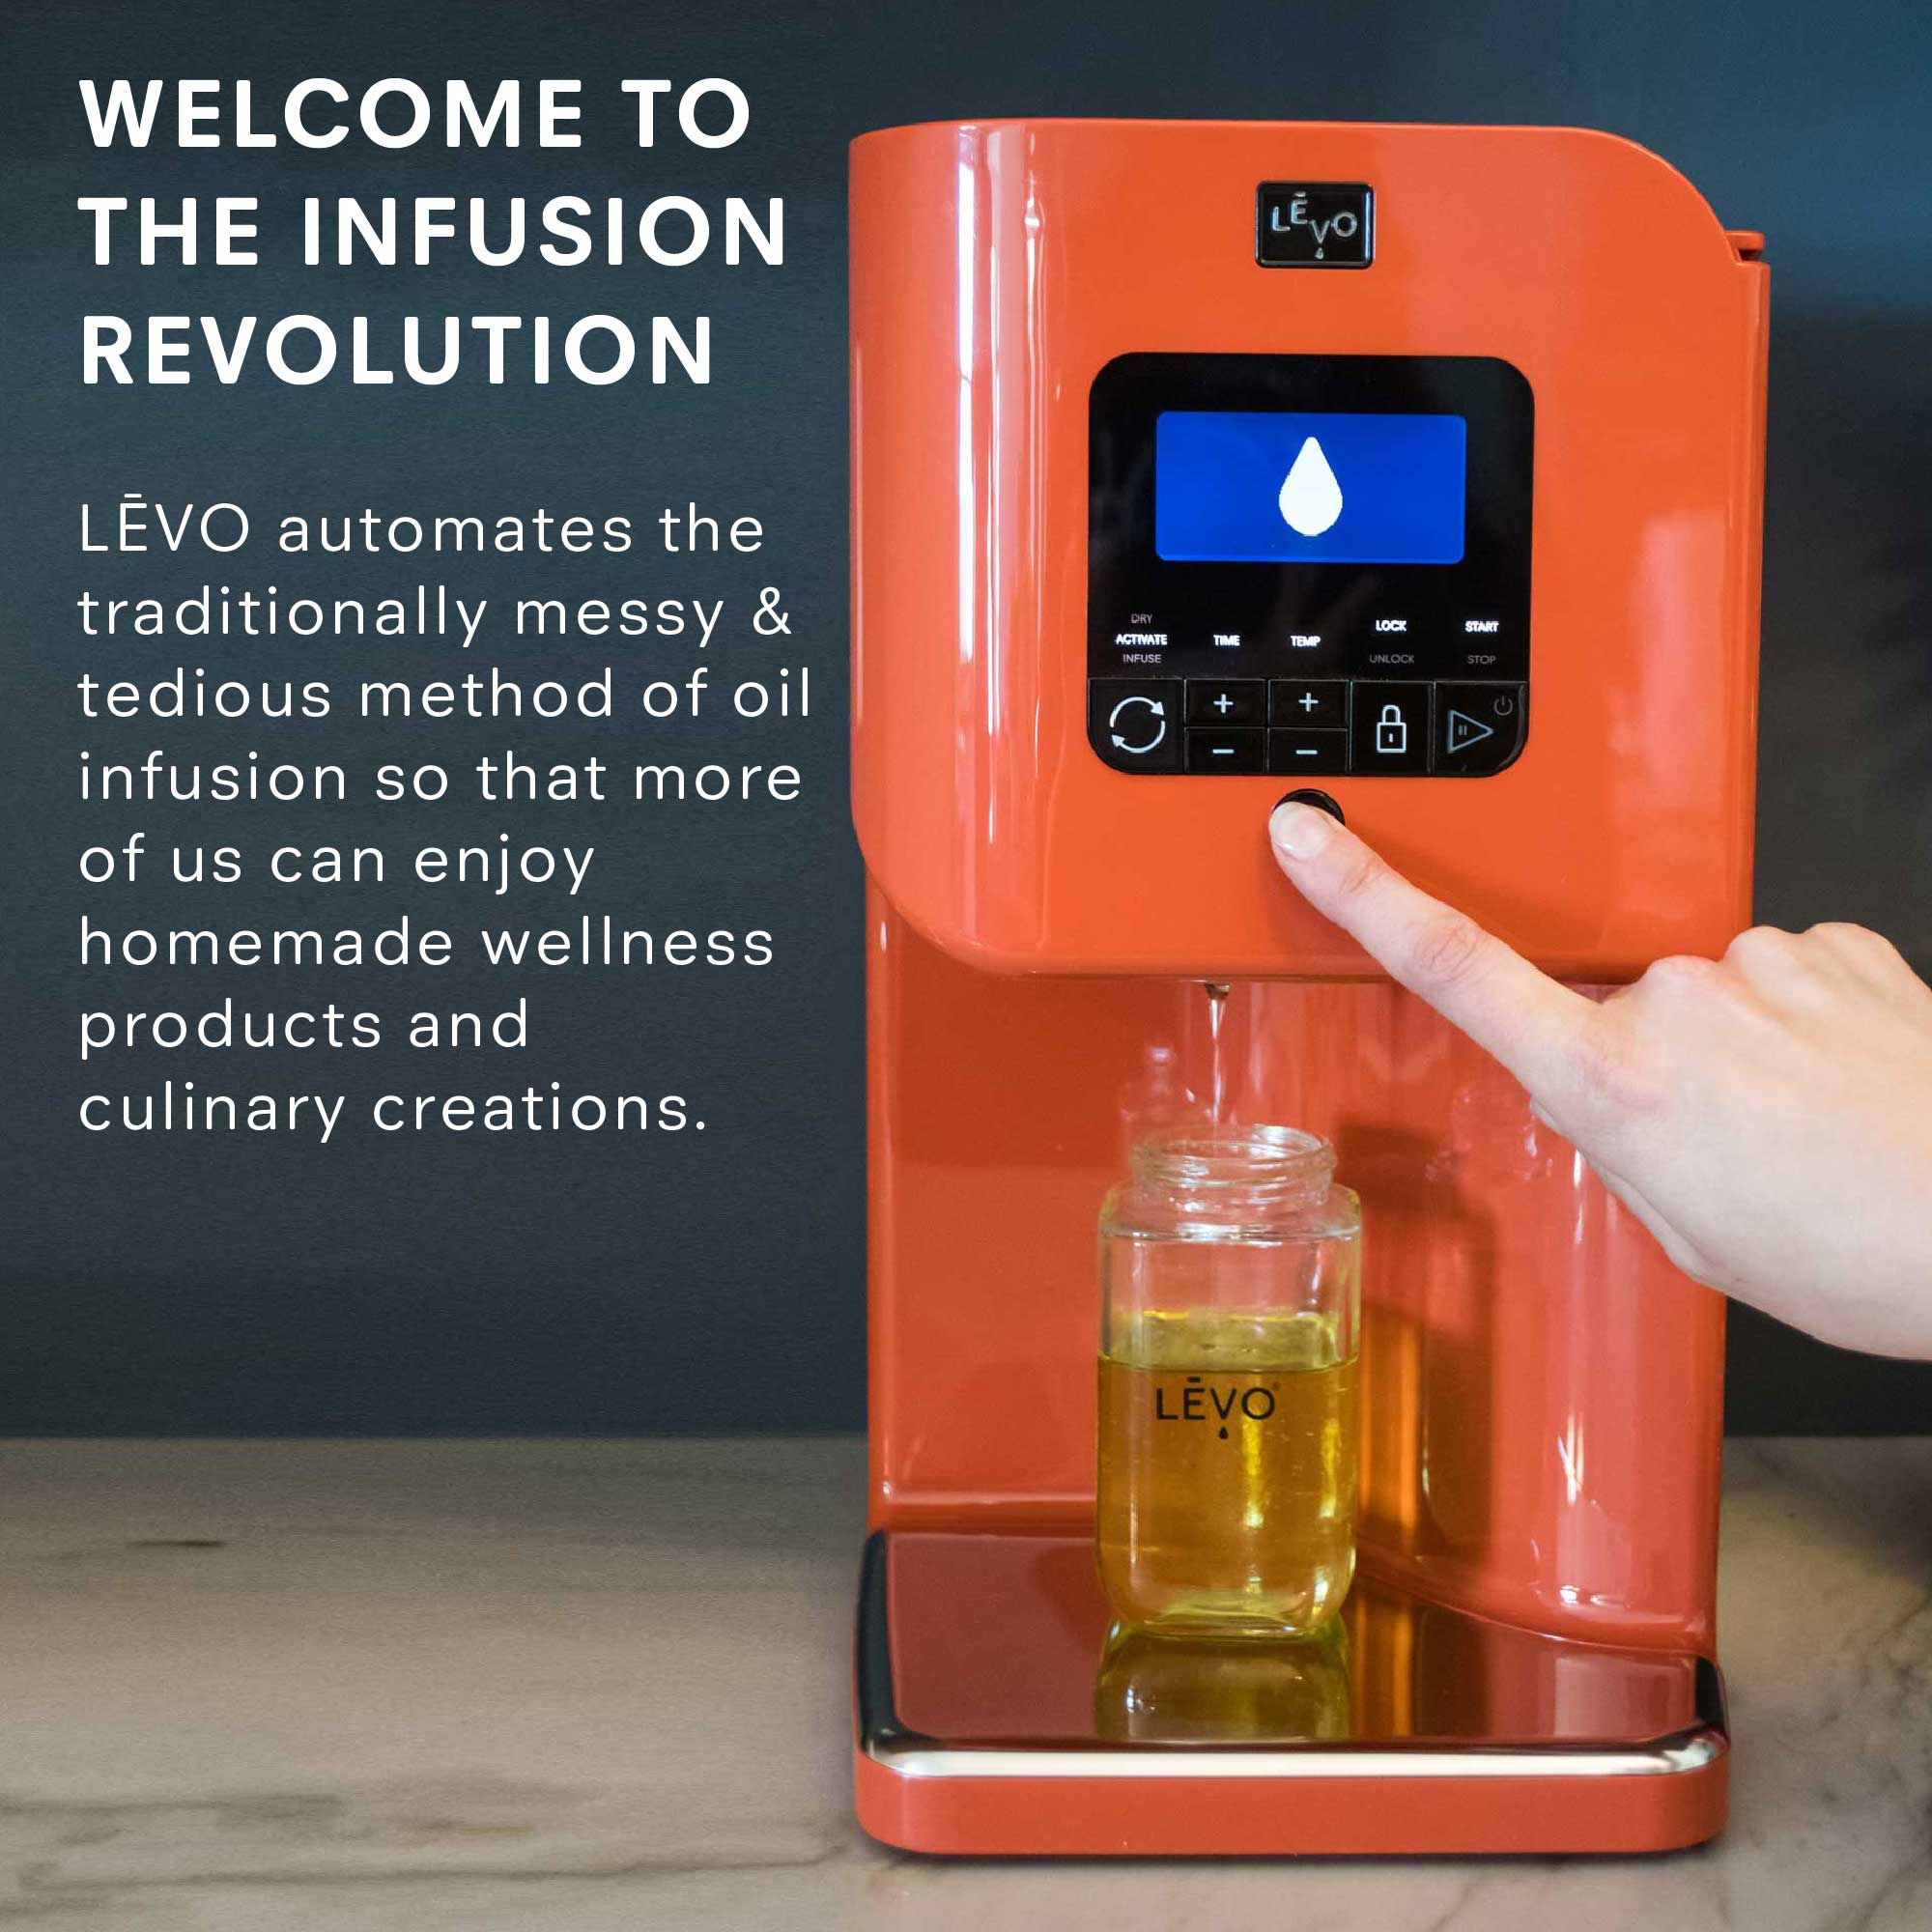 LEVO automates the traditionally messy and tedious method of oil infusion so that more of us can enjoy homemade wellness products and culinary creations.